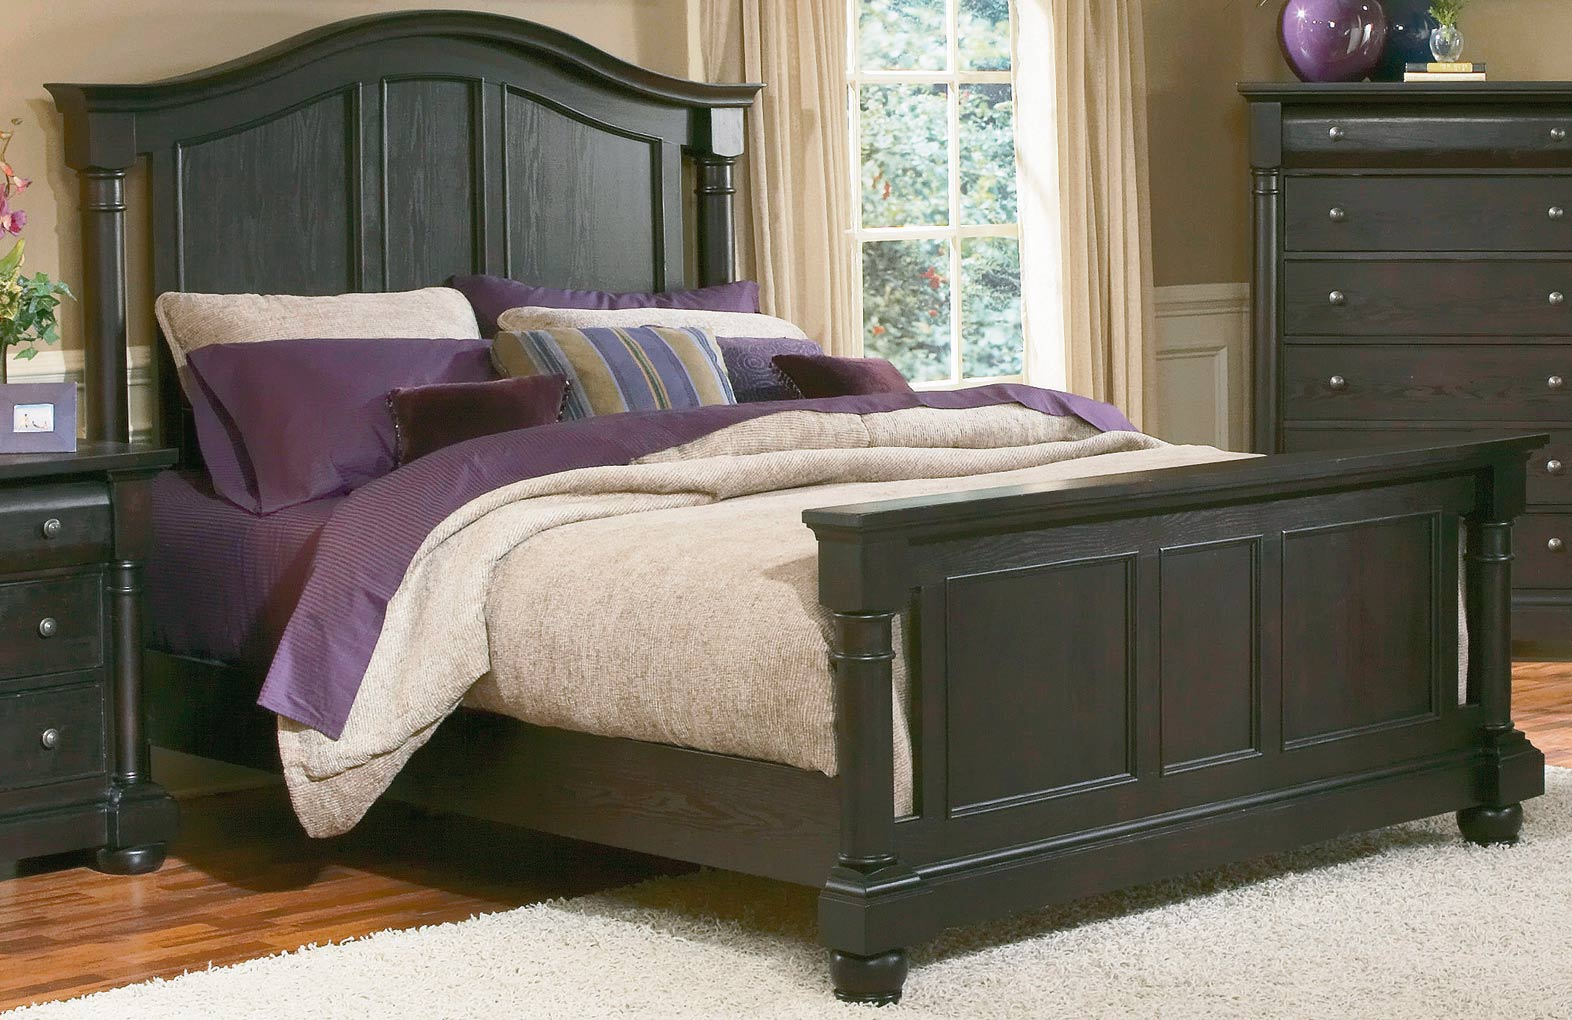 Homelegance Notting Hill Bed